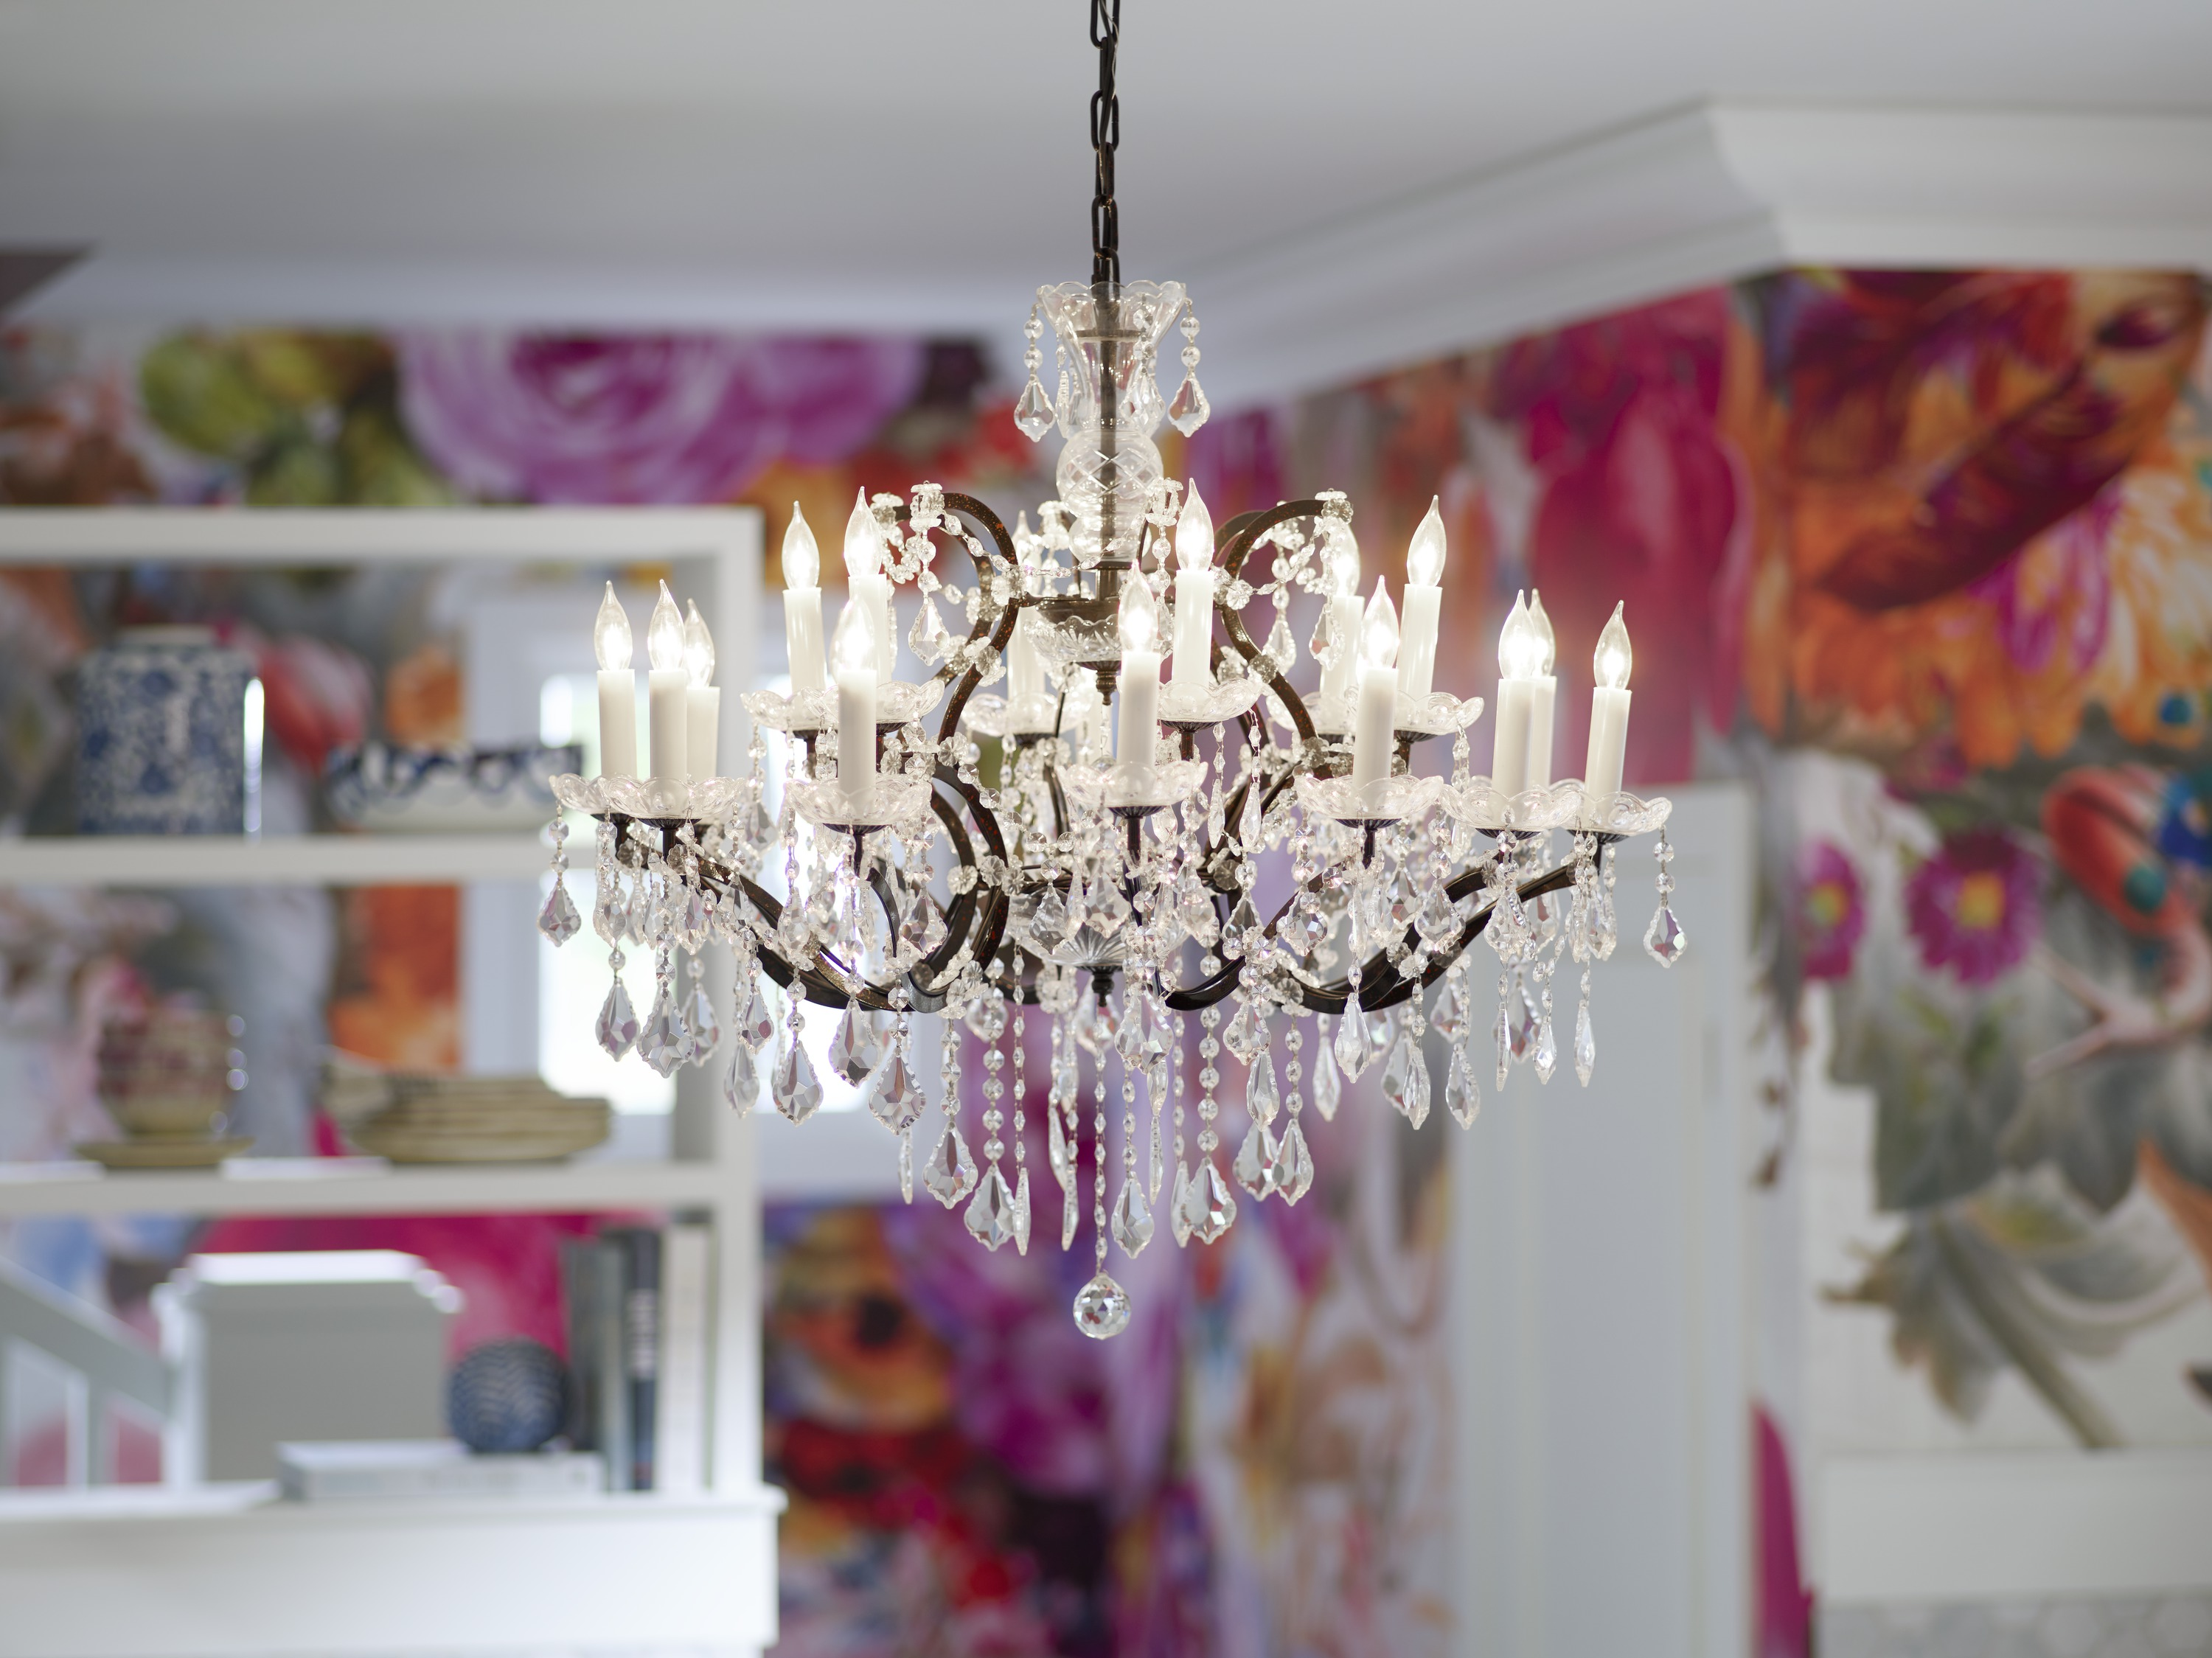 An intricate glass chandelier adds sophistication to a playful space.